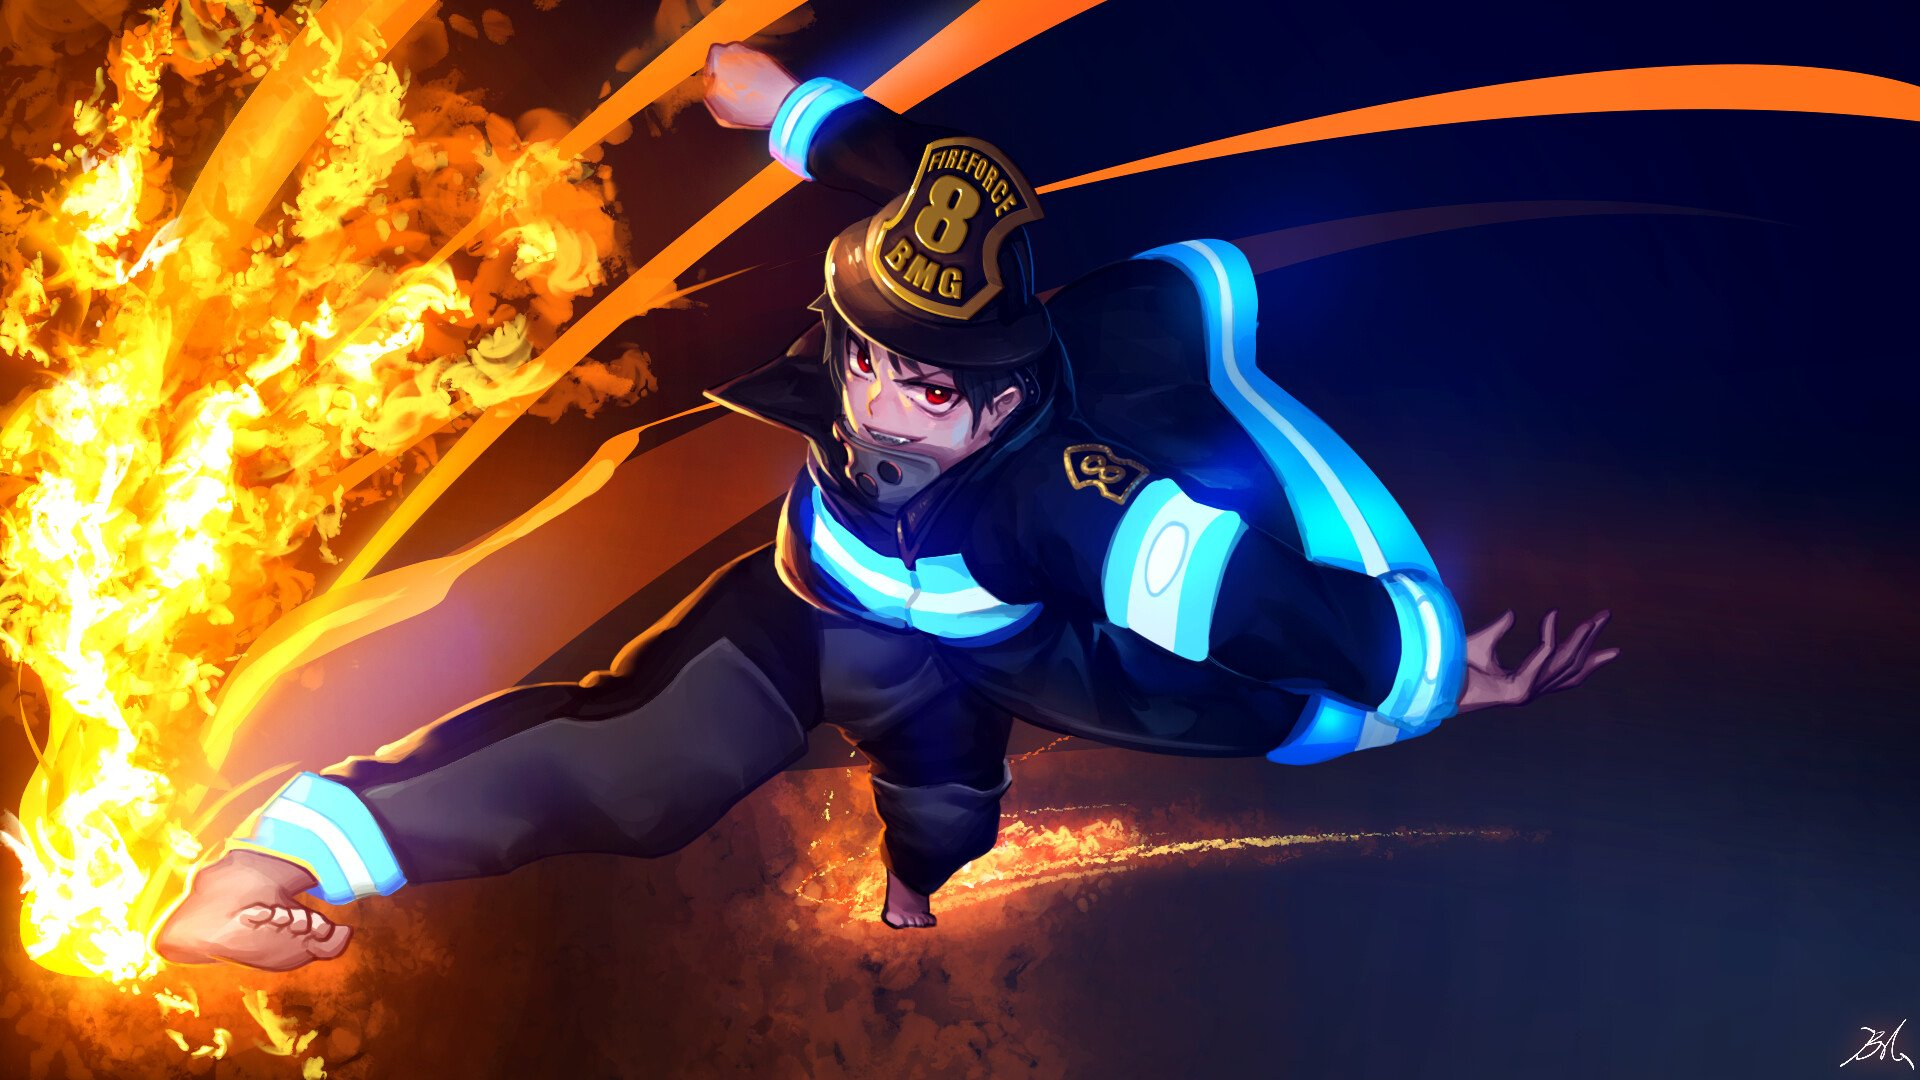 Fire Force Hd Wallpaper Background Image 1920x1080 Id 1049309 Wallpaper Abyss Hd wallpapers and background images. fire force hd wallpaper background